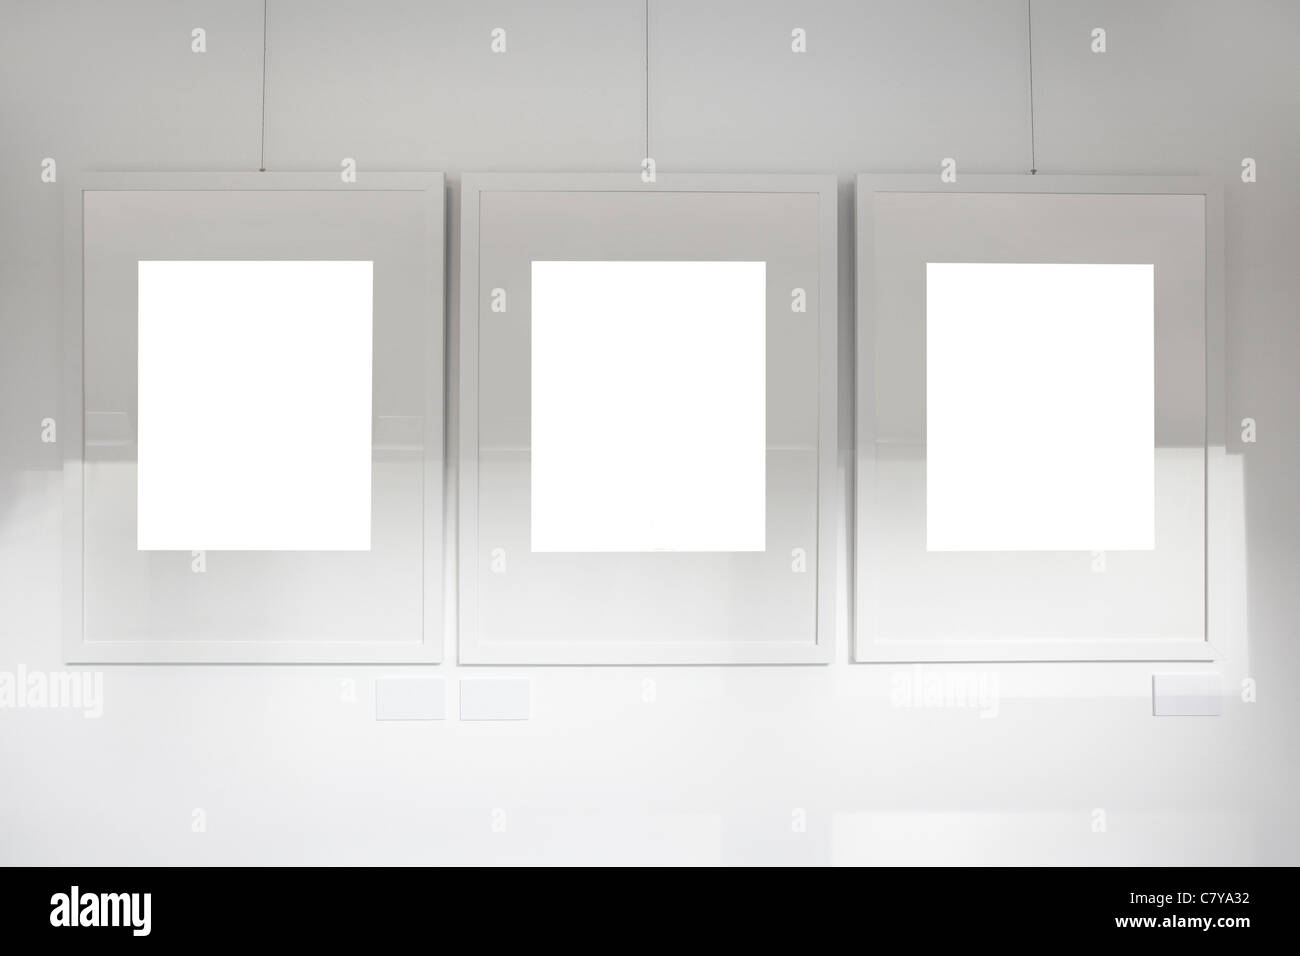 Blank frames on art gallery white wall Stock Photo: 39323958 - Alamy